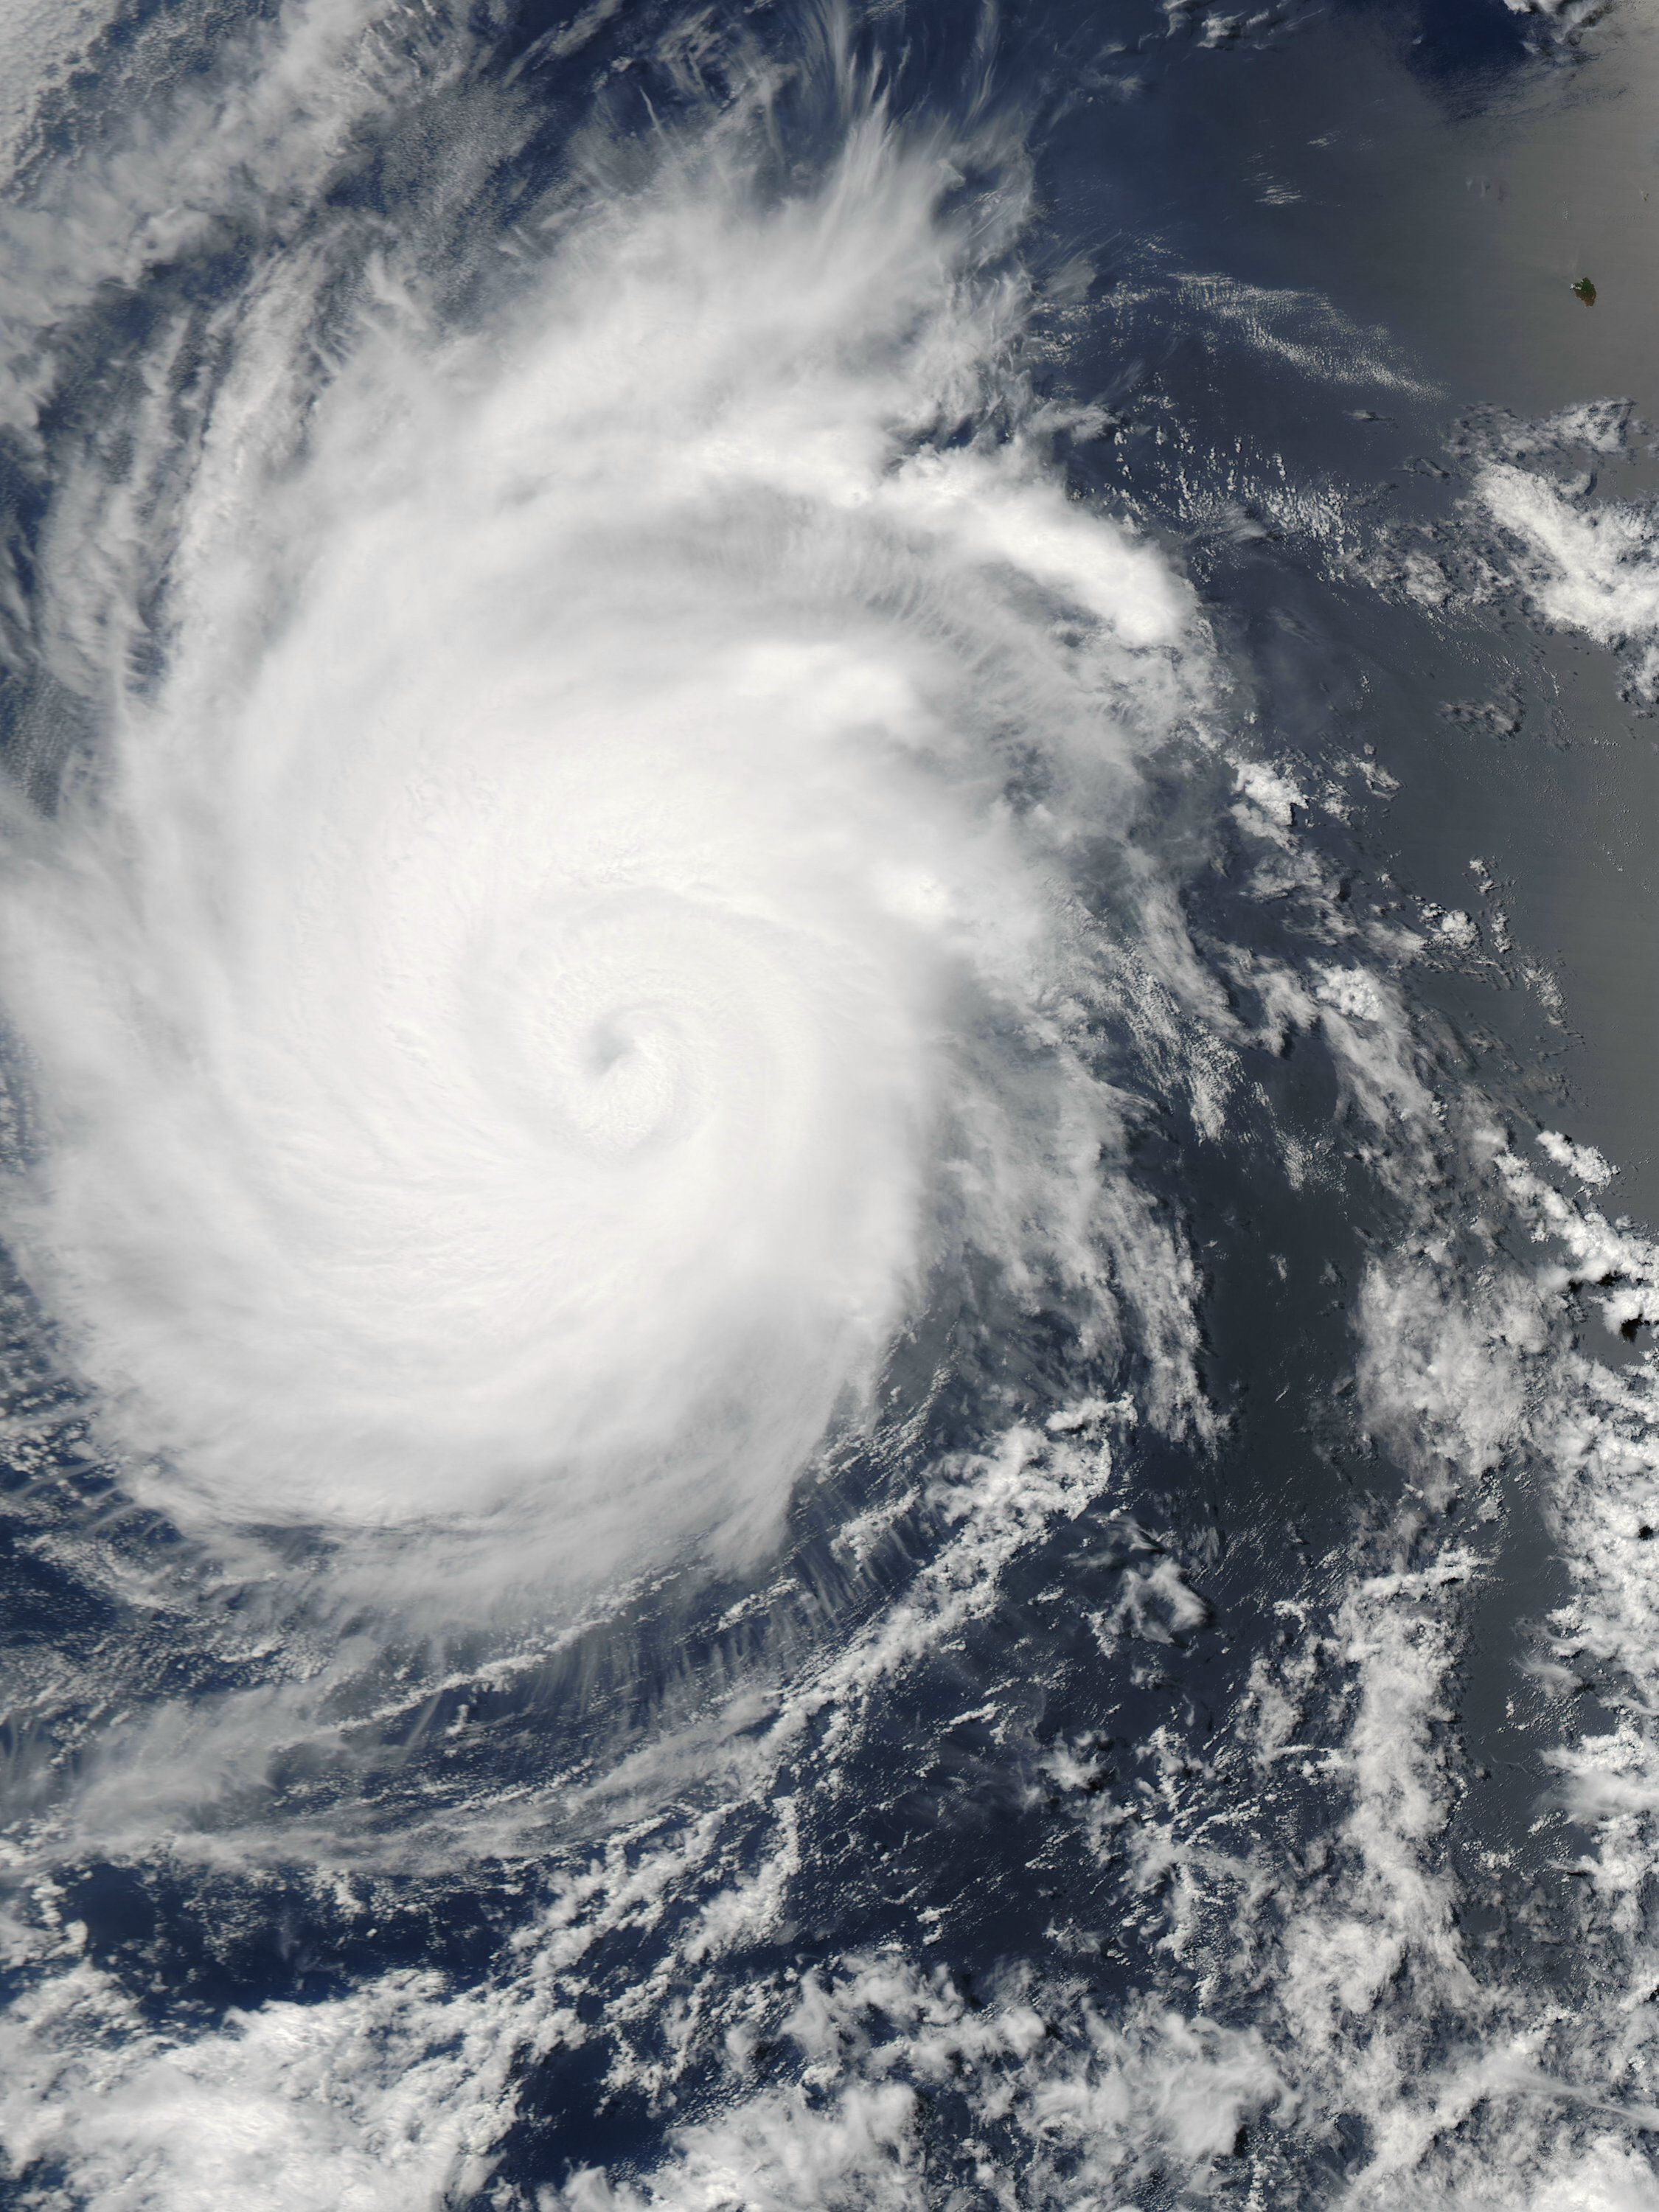 Hurricane Emilia Reached Peak Intensity Yesterday July 10 When Its Maximum Sustained Winds Hit 140 Mph 220 Kmh To Earth Images Weird World Satellite Image